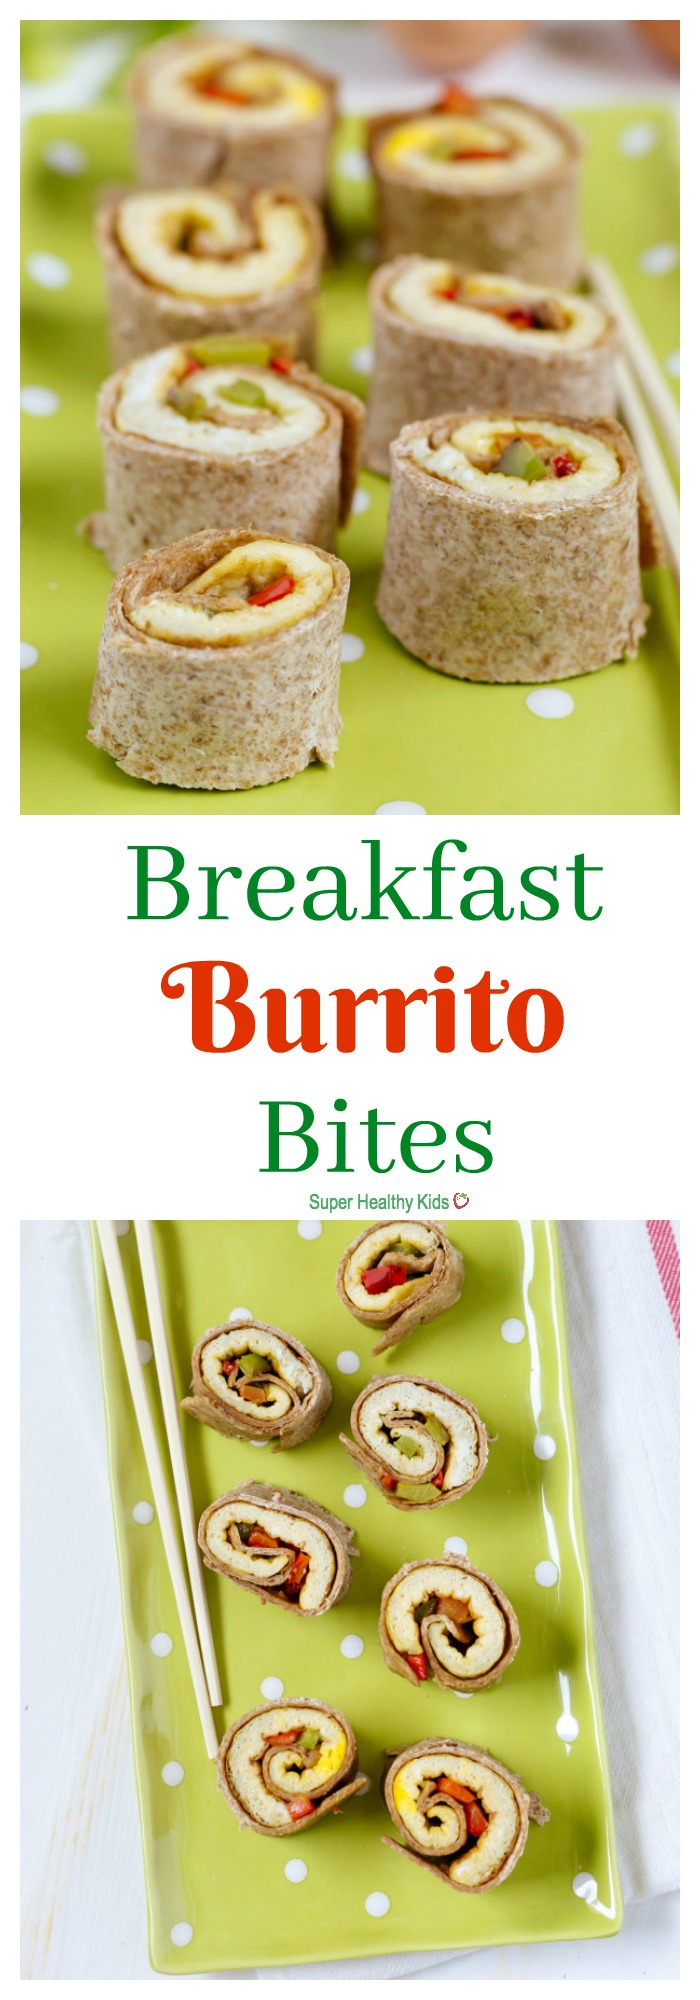 FOOD - Breakfast Burrito Bites. With bell peppers, eggs, and whole wheat tortillas, these burrito bites are the perfect breakfast for your kids. http://www.superhealthykids.com/finger-food-breakfast-burrito-bites/